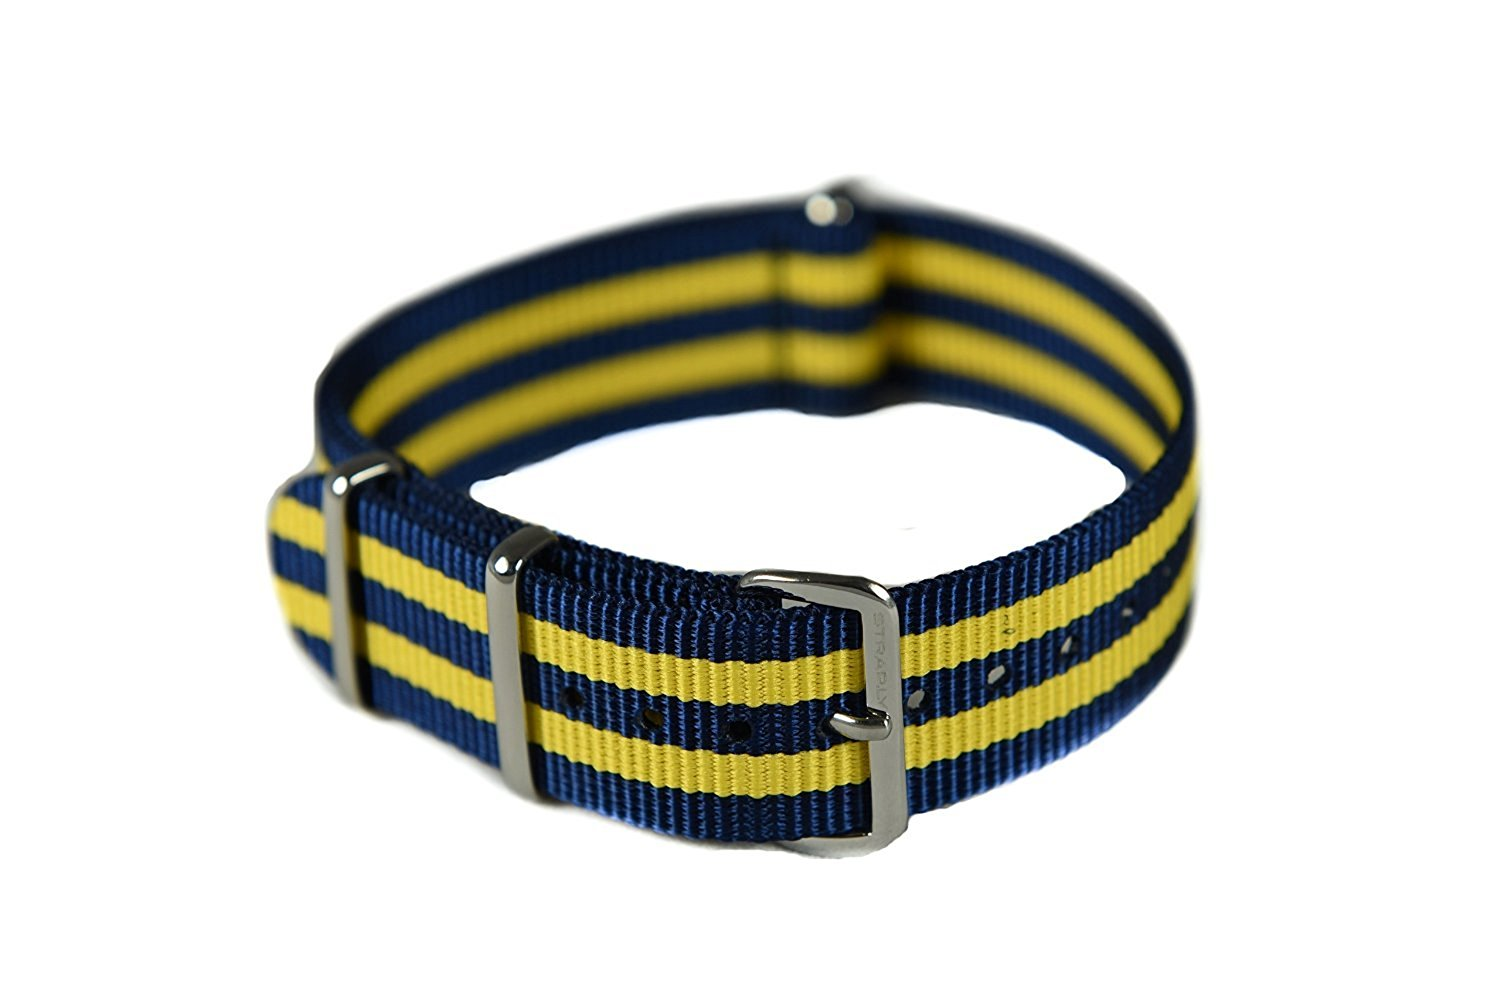 NATO G10 Nylon Premium Quality Replacement Watch Band Strap - 18mm / Blue Double Yellow - FITS ALL WATCHES - (Military Army, J. Crew, Timex Weekender, Daniel Wellington, Urban Outfitters, Luminox, Seiko, Citizen, Blackout Watches, Victorinox Swiss Army, Rolex and more)